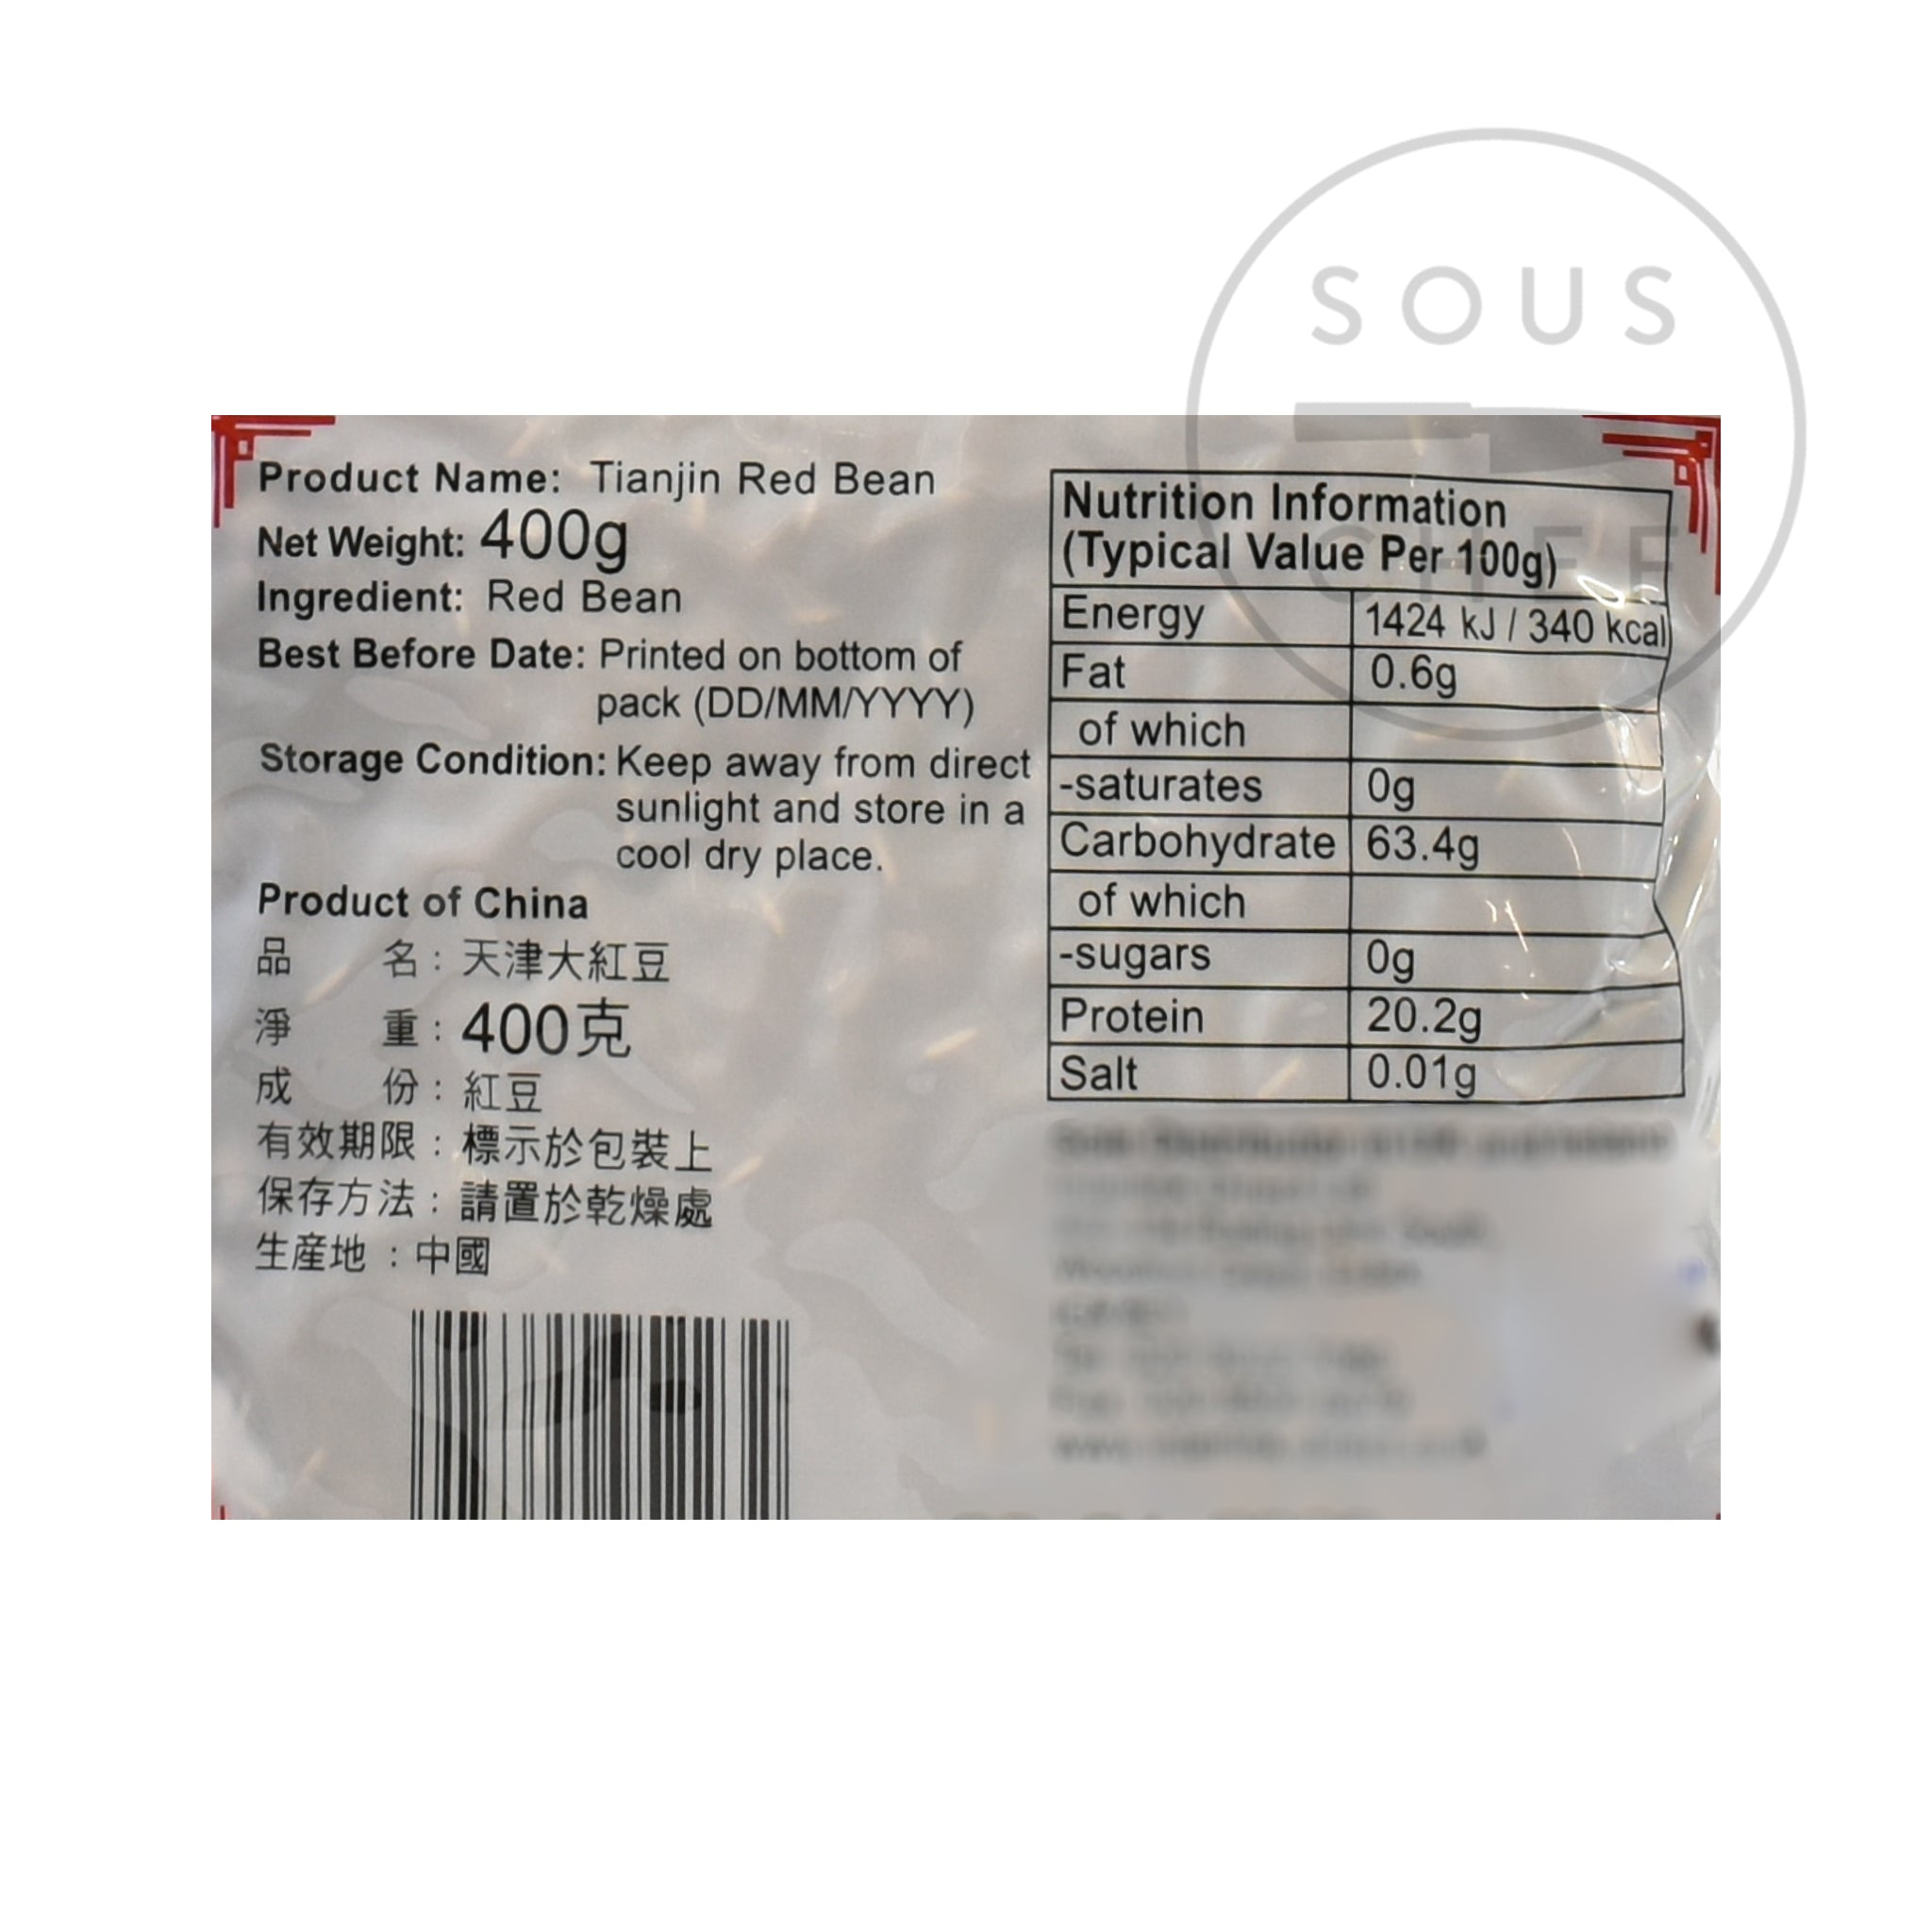 Azuki Red Bean 400g nutritional information ingredients